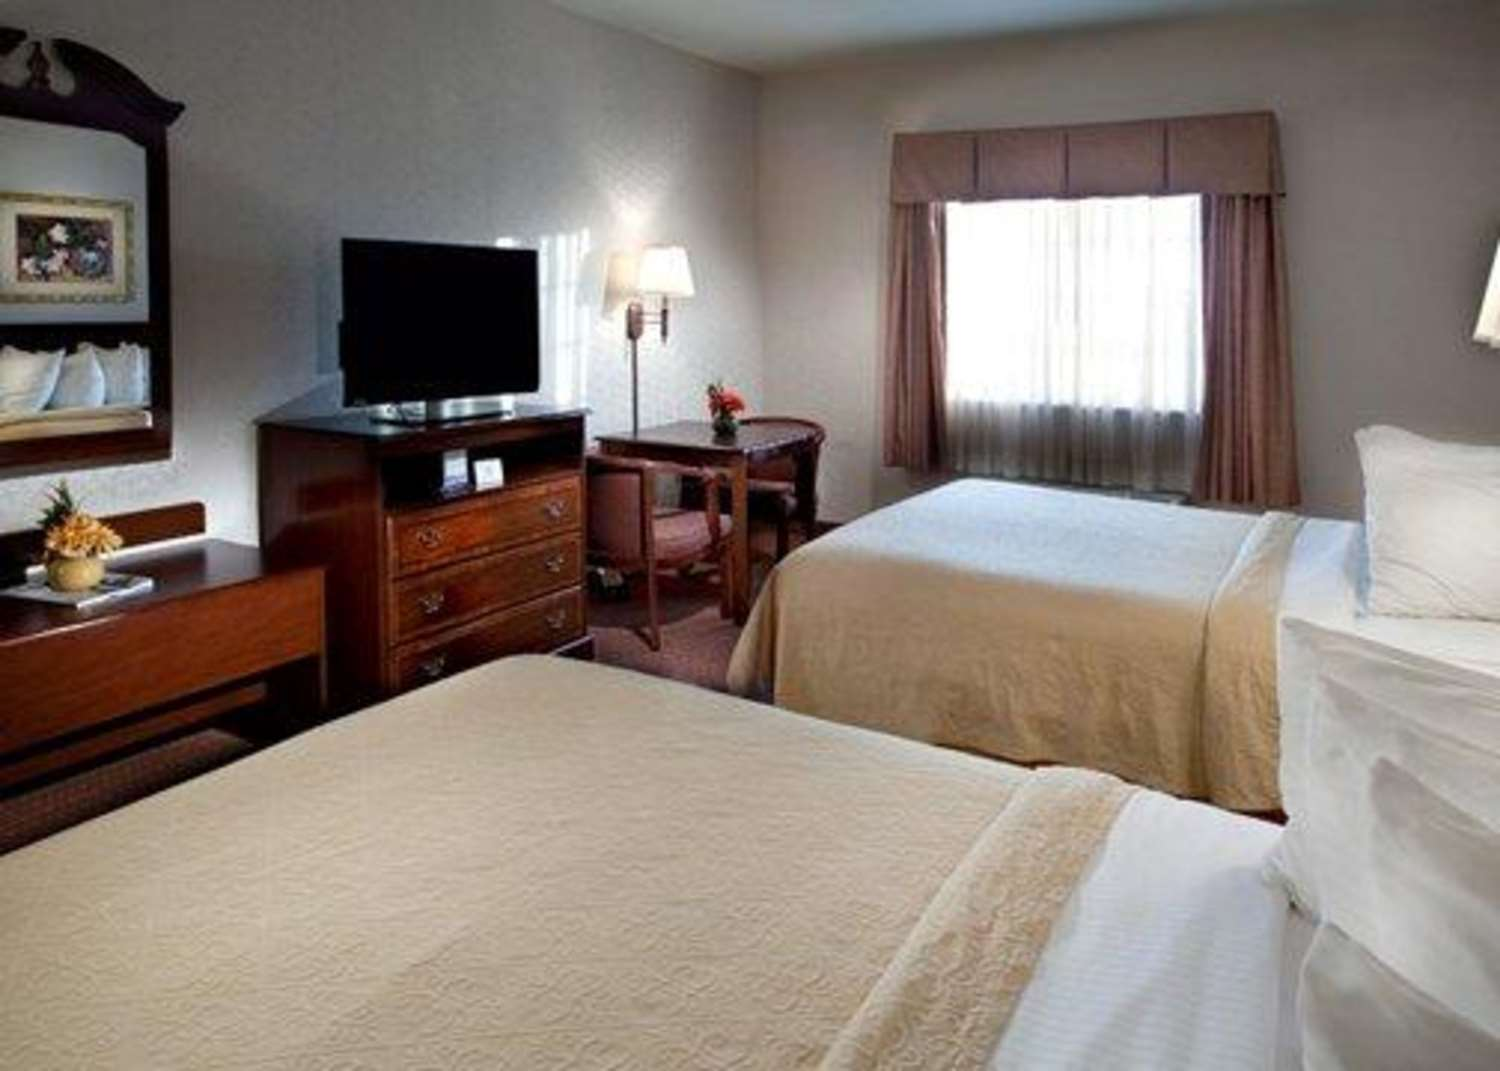 Quality Inn & Suites South Waco, TX - See Discounts on